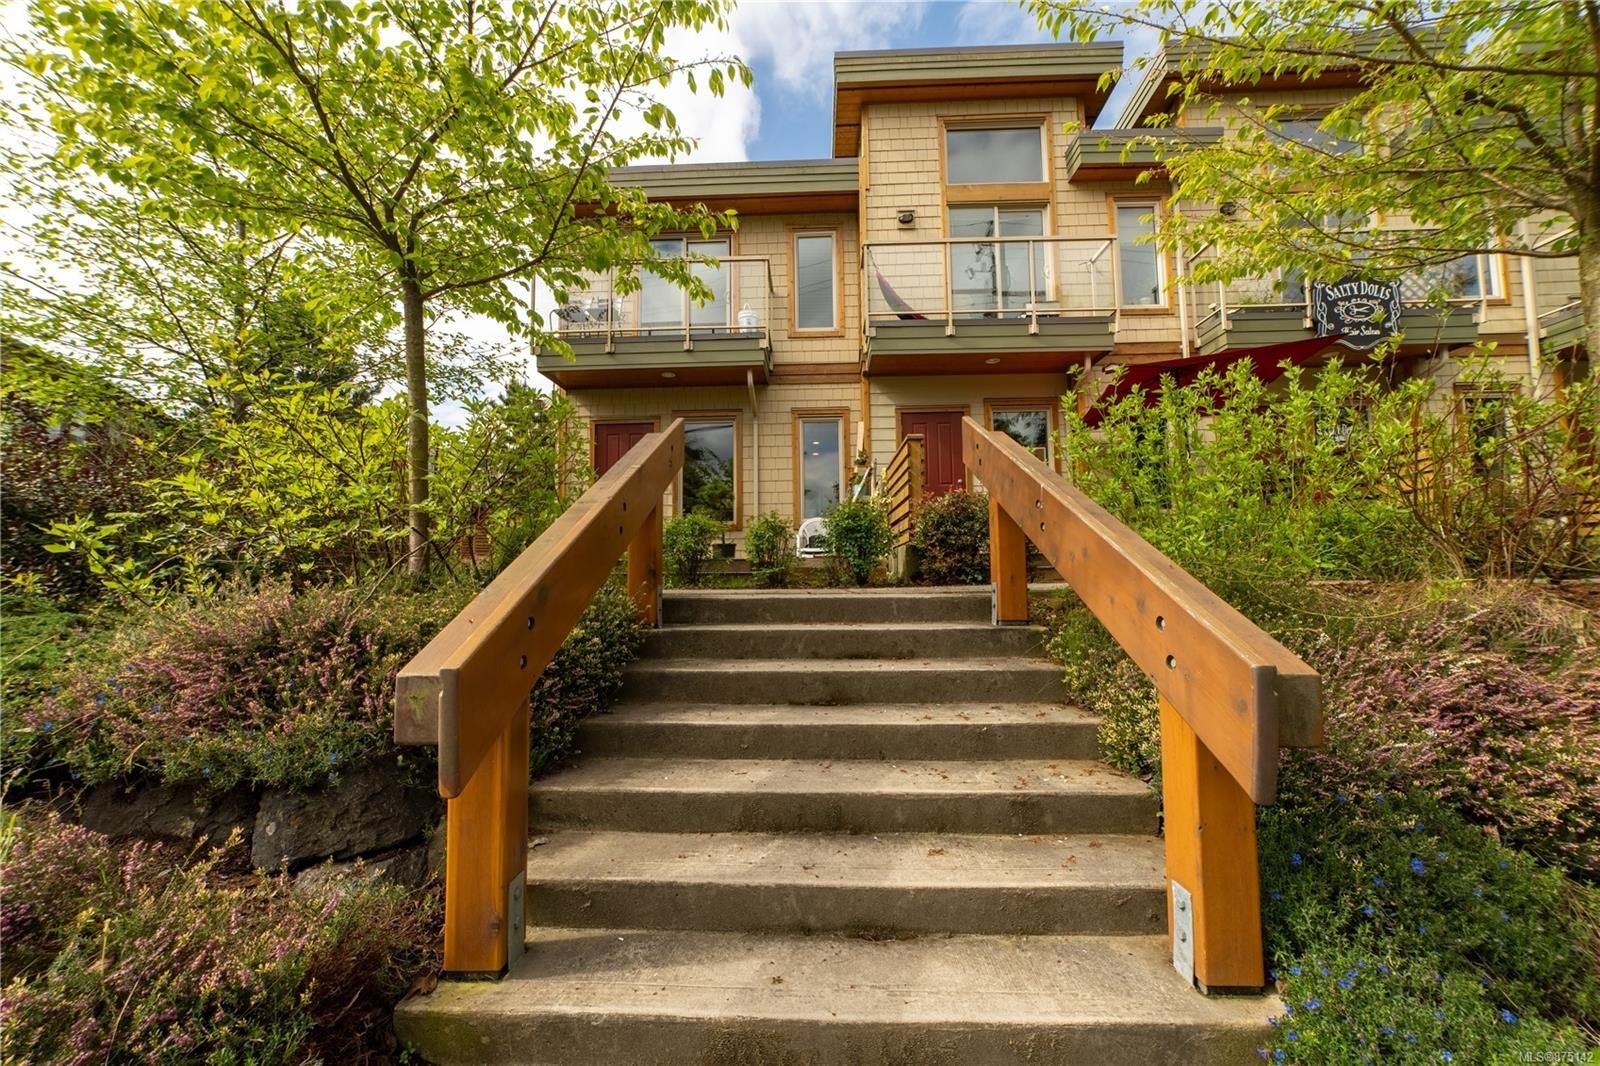 Main Photo: 105 605 Gibson St in : PA Tofino Row/Townhouse for sale (Port Alberni)  : MLS®# 875142